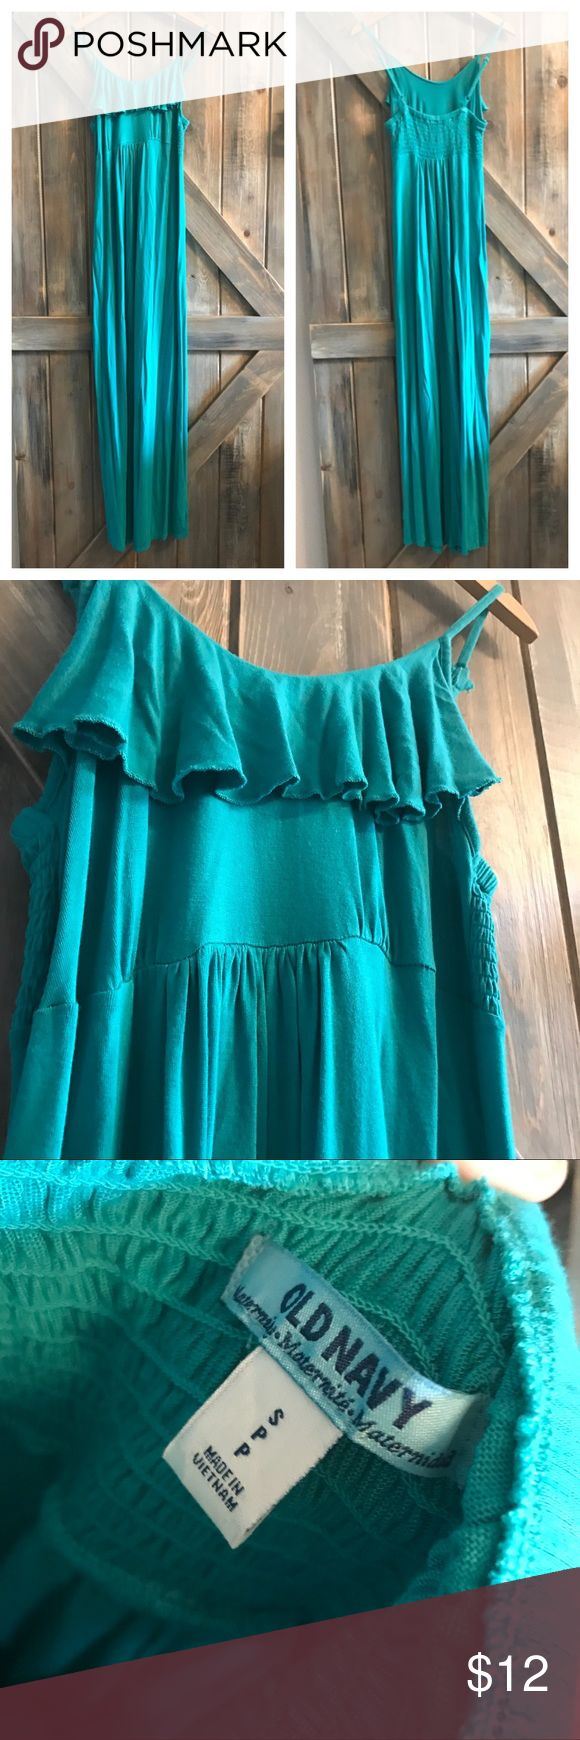 🌿NEW🌿 Old Navy Maternity Dress Great Condition. Ruffled neckline. adjustable straps. So comfortable! true to size. TEAL Old Navy Dresses Maxi